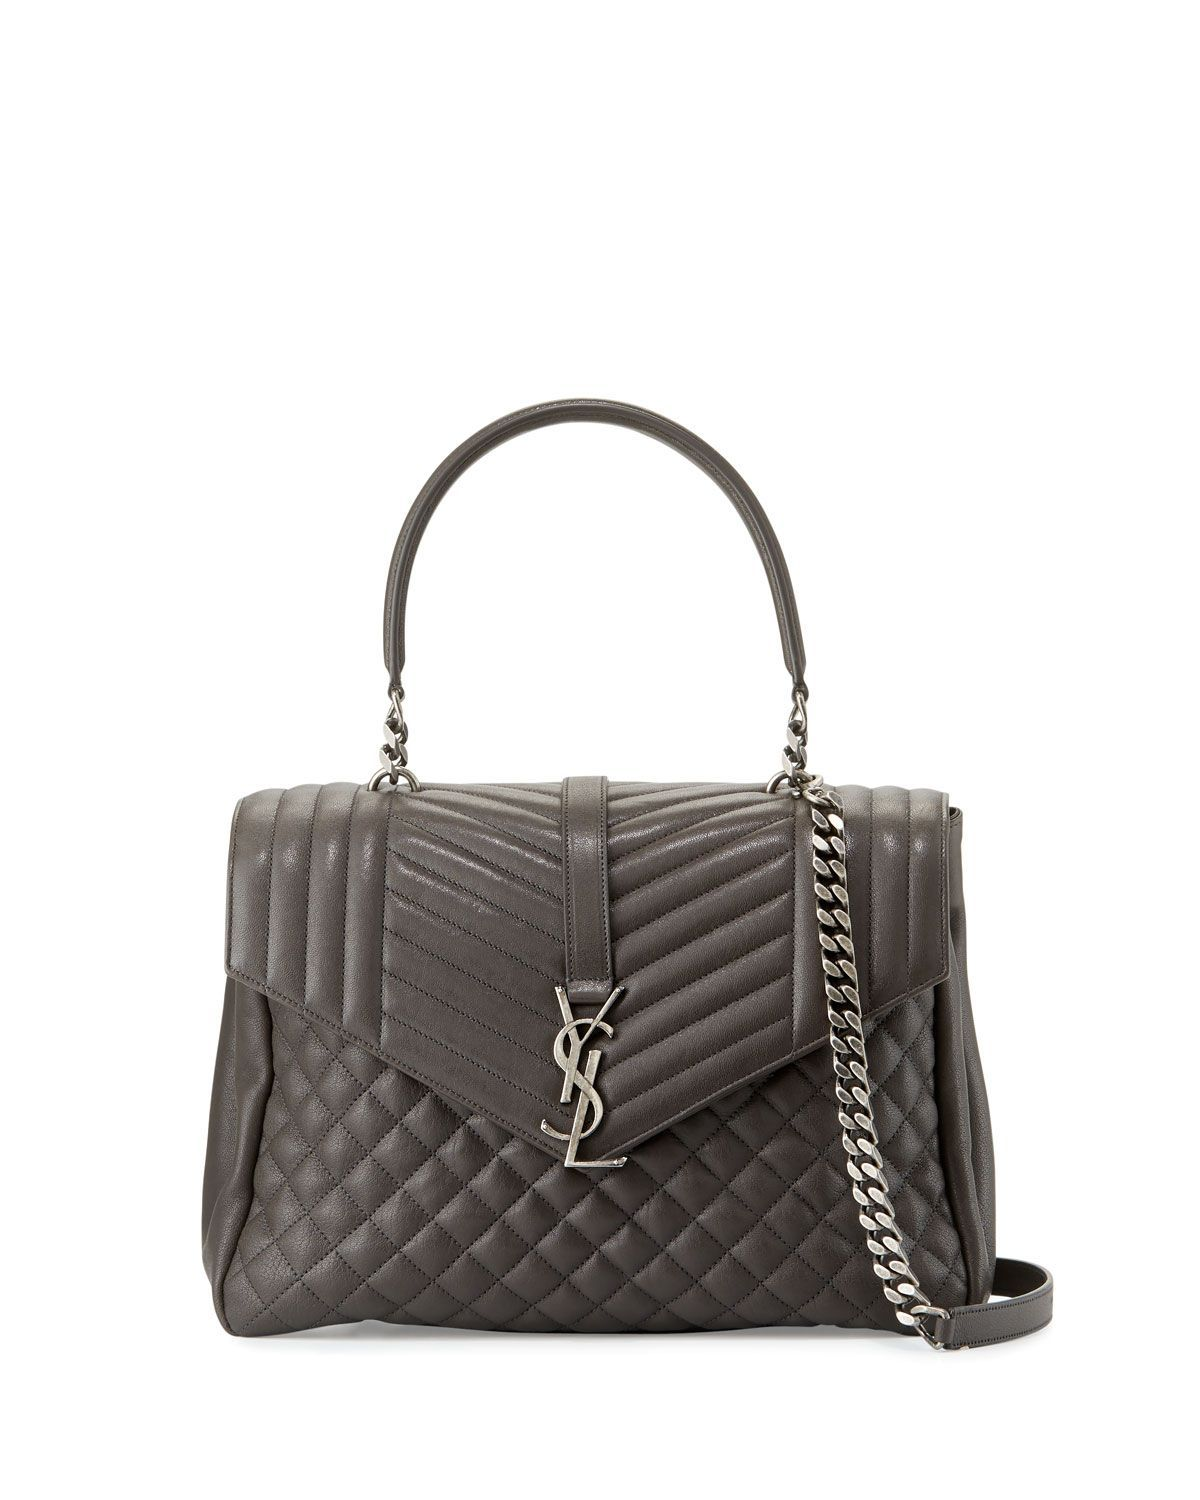 Saint Laurent tri-quilted calfskin leather shoulder bag. Top handle with  chain inset 84e6e31798701